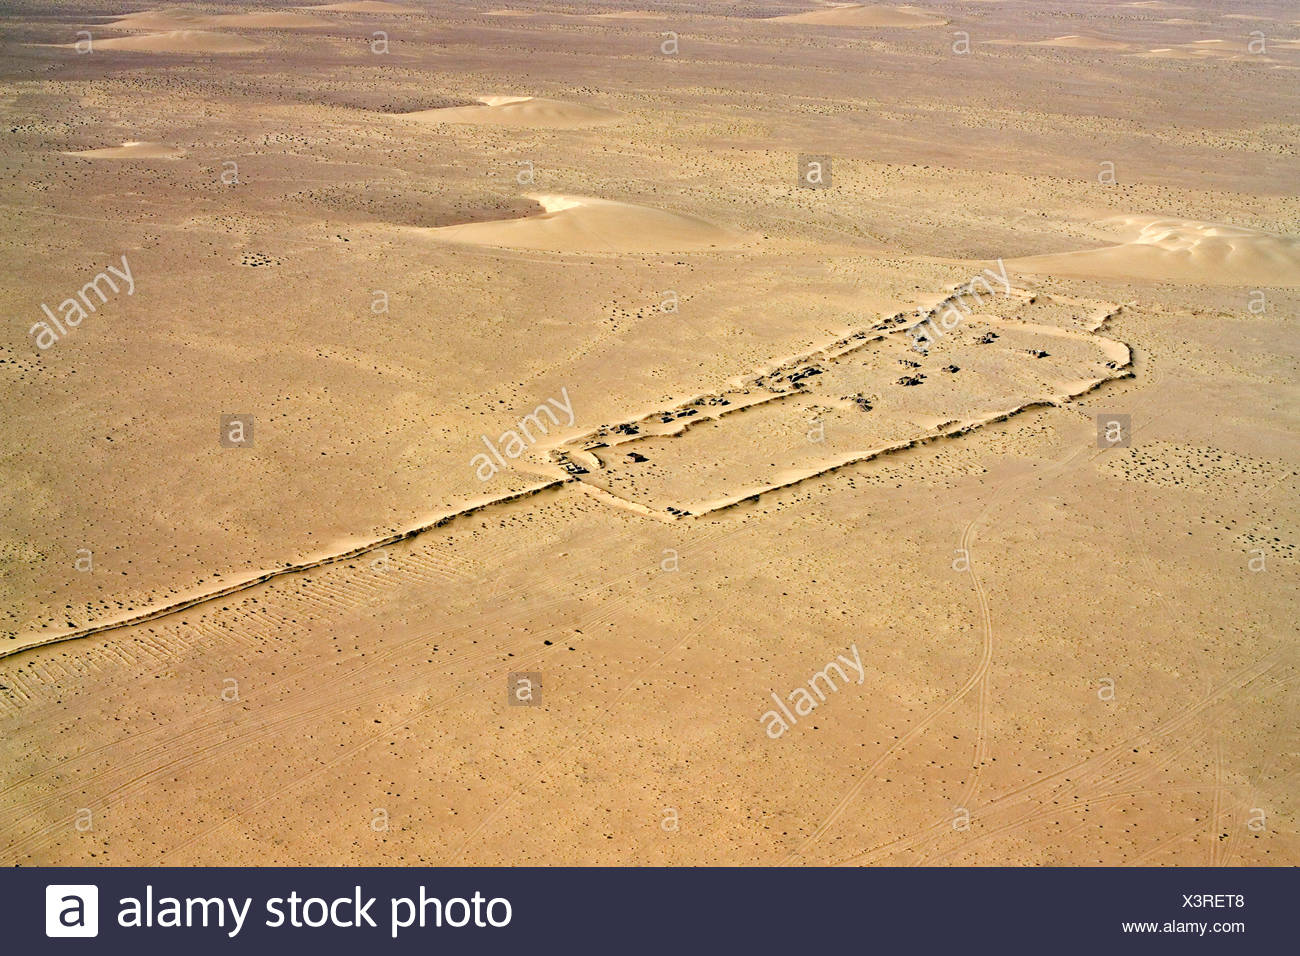 The Berm of Western Sahara or the Moroccan Wall. - Stock Image